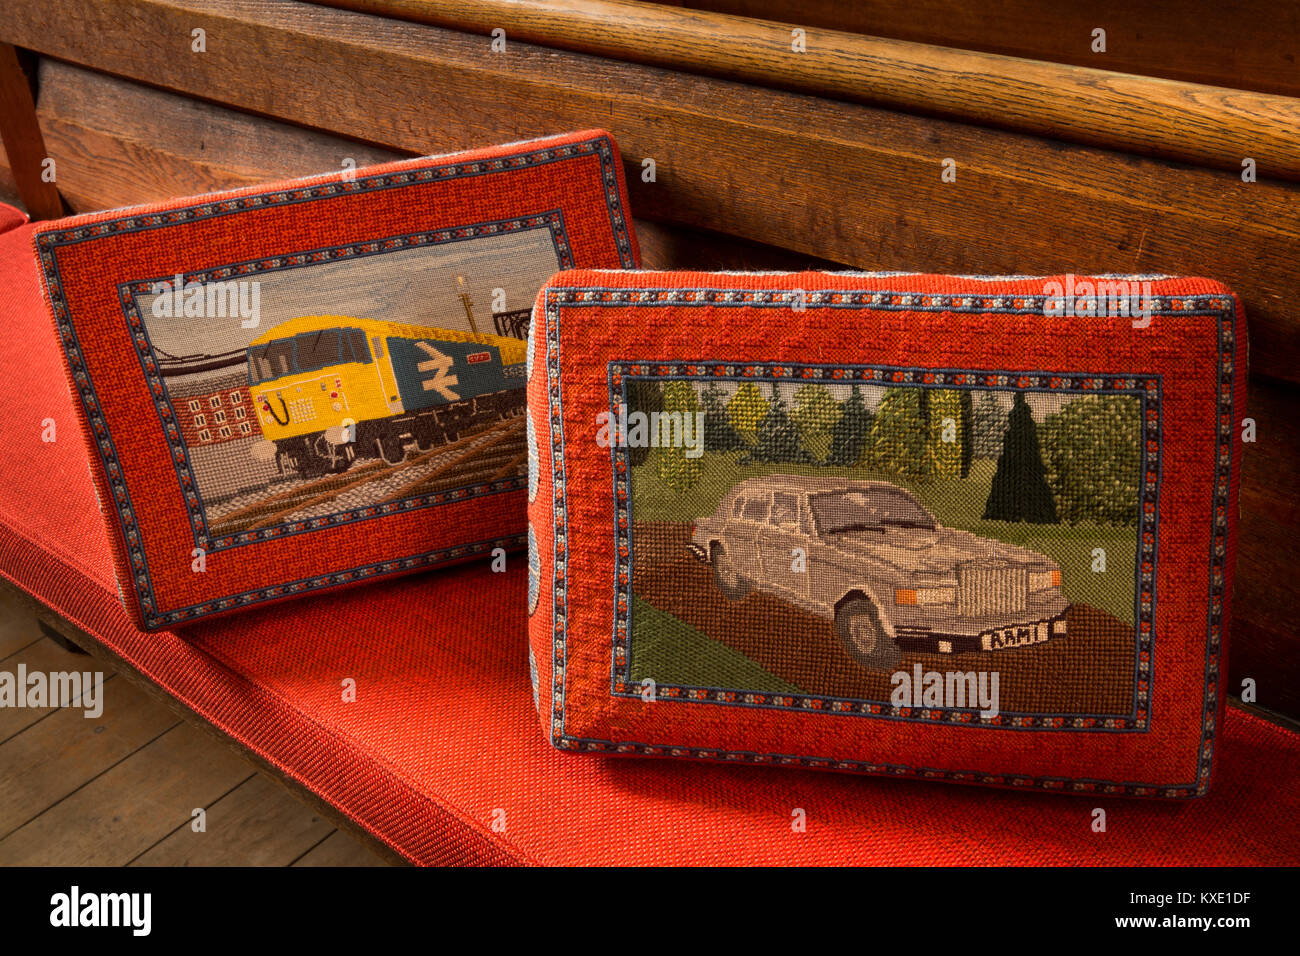 UK, England, Cheshire, Nantwich, St Mary's Church, local industry Crewe Railway and Rolls-Royce kneelers - Stock Image